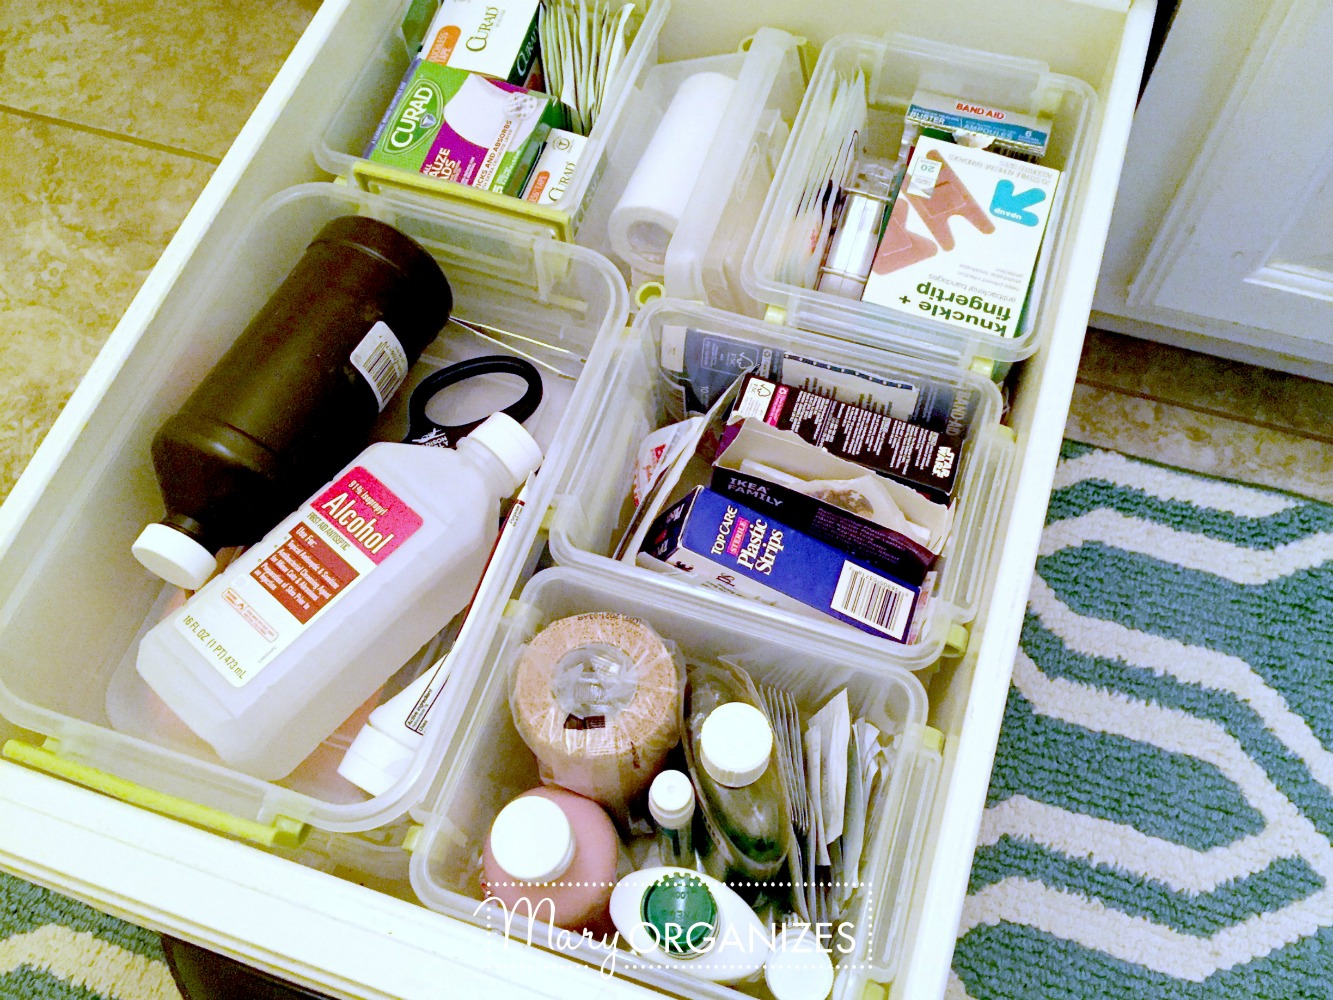 Organizing First Aid Supplies - This is what I do - Mary ORGANIZES 4